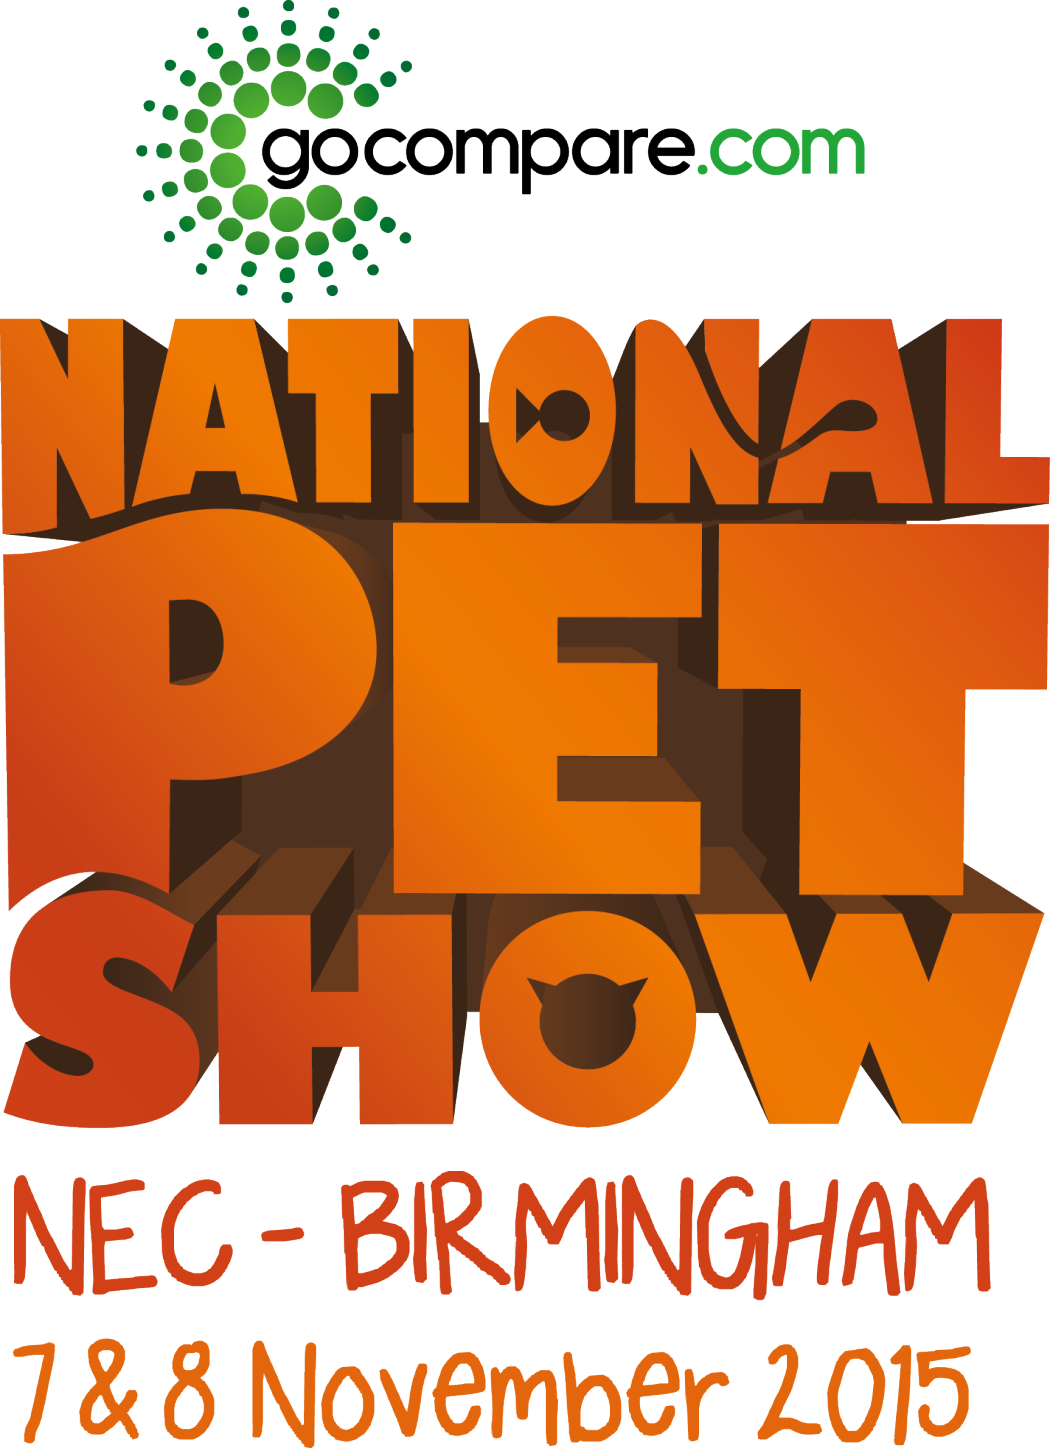 http://citydogexpert.com/wp-content/uploads/2015/09/National-Pet-Show_FIN-1050x1448.png